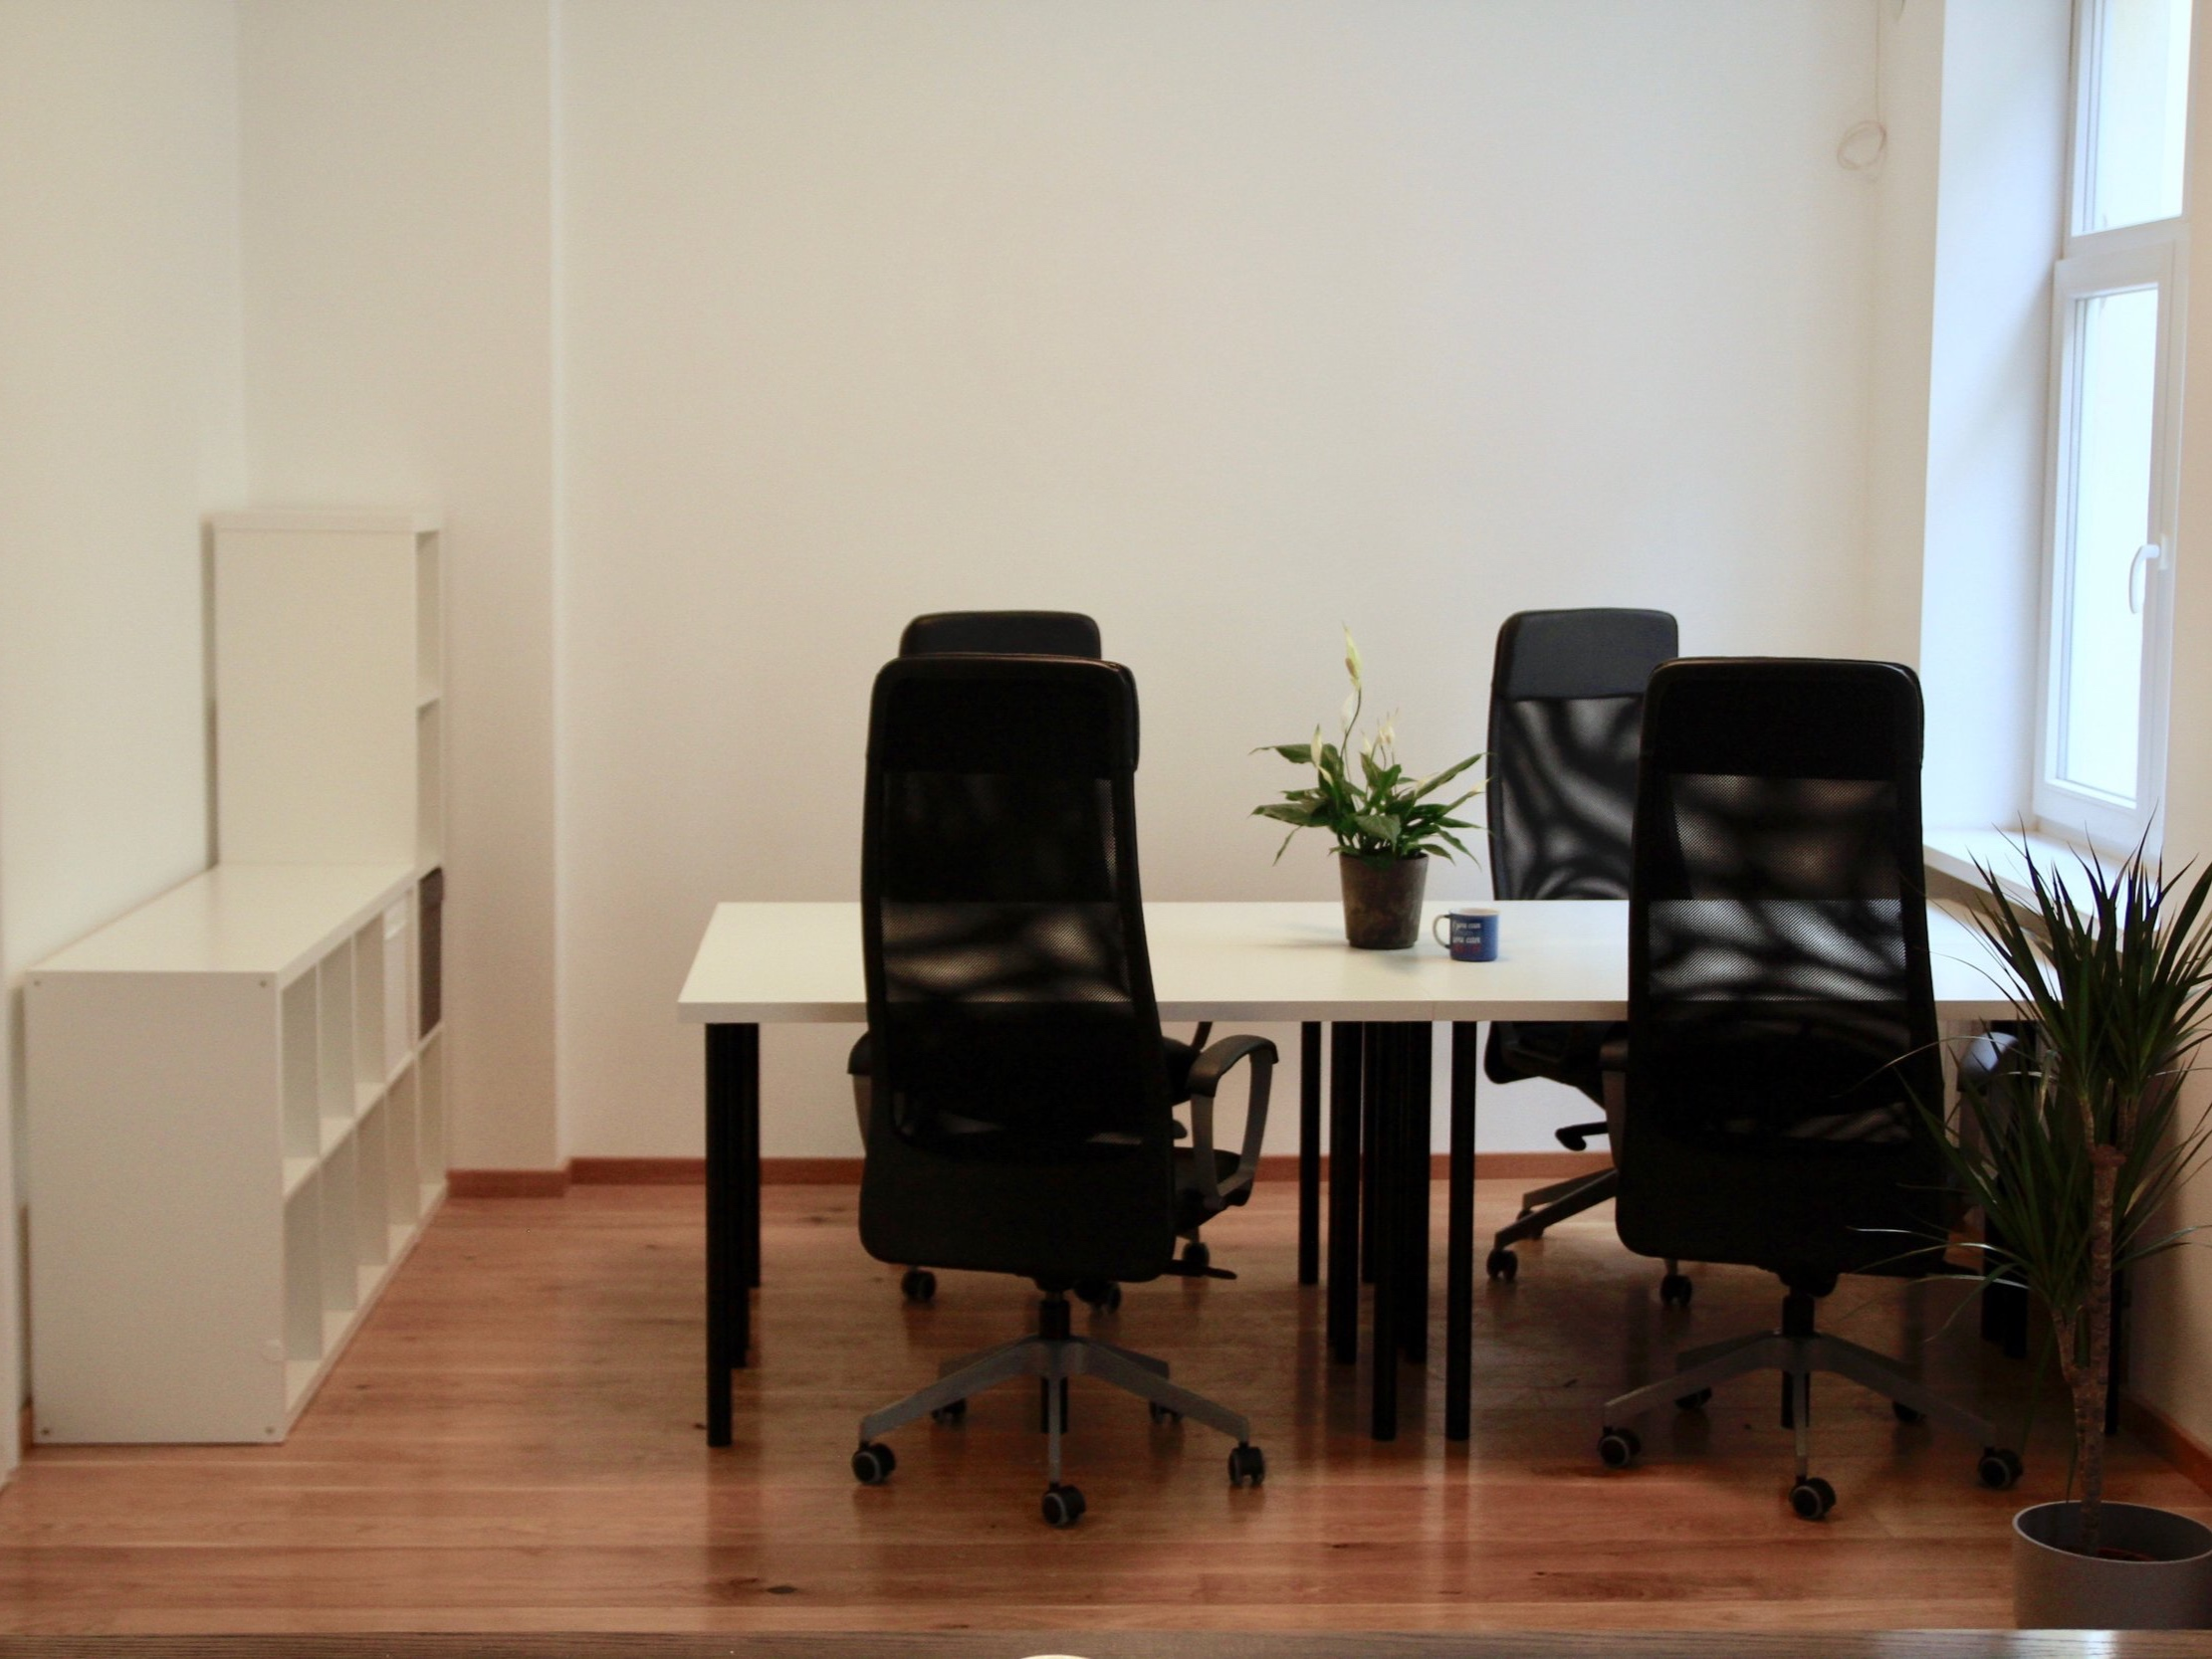 Private Office available -    Learn more   A 5 person office, available now. 42 people capacity, fully furnished, networked, w/ meeting room